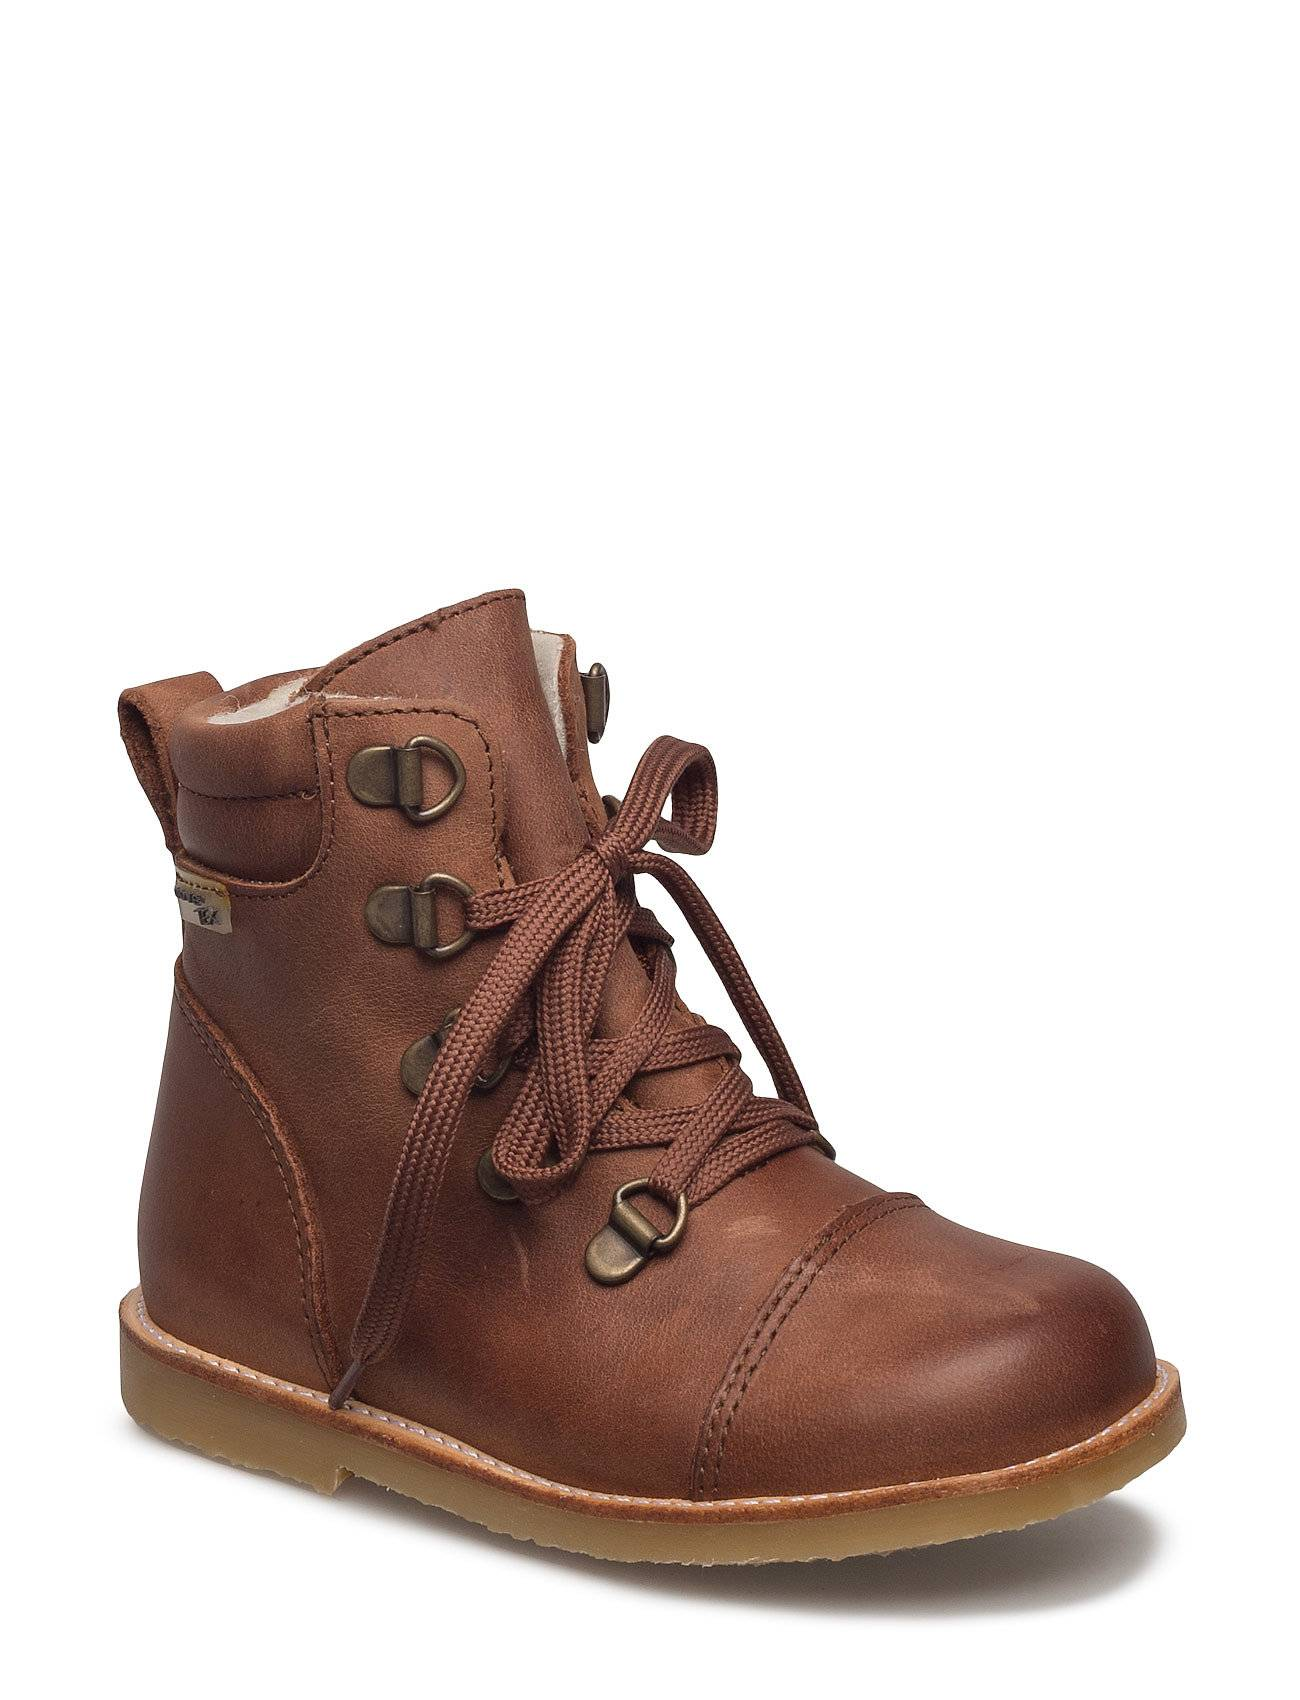 Move by Melton Infant - Winter Lace Boot